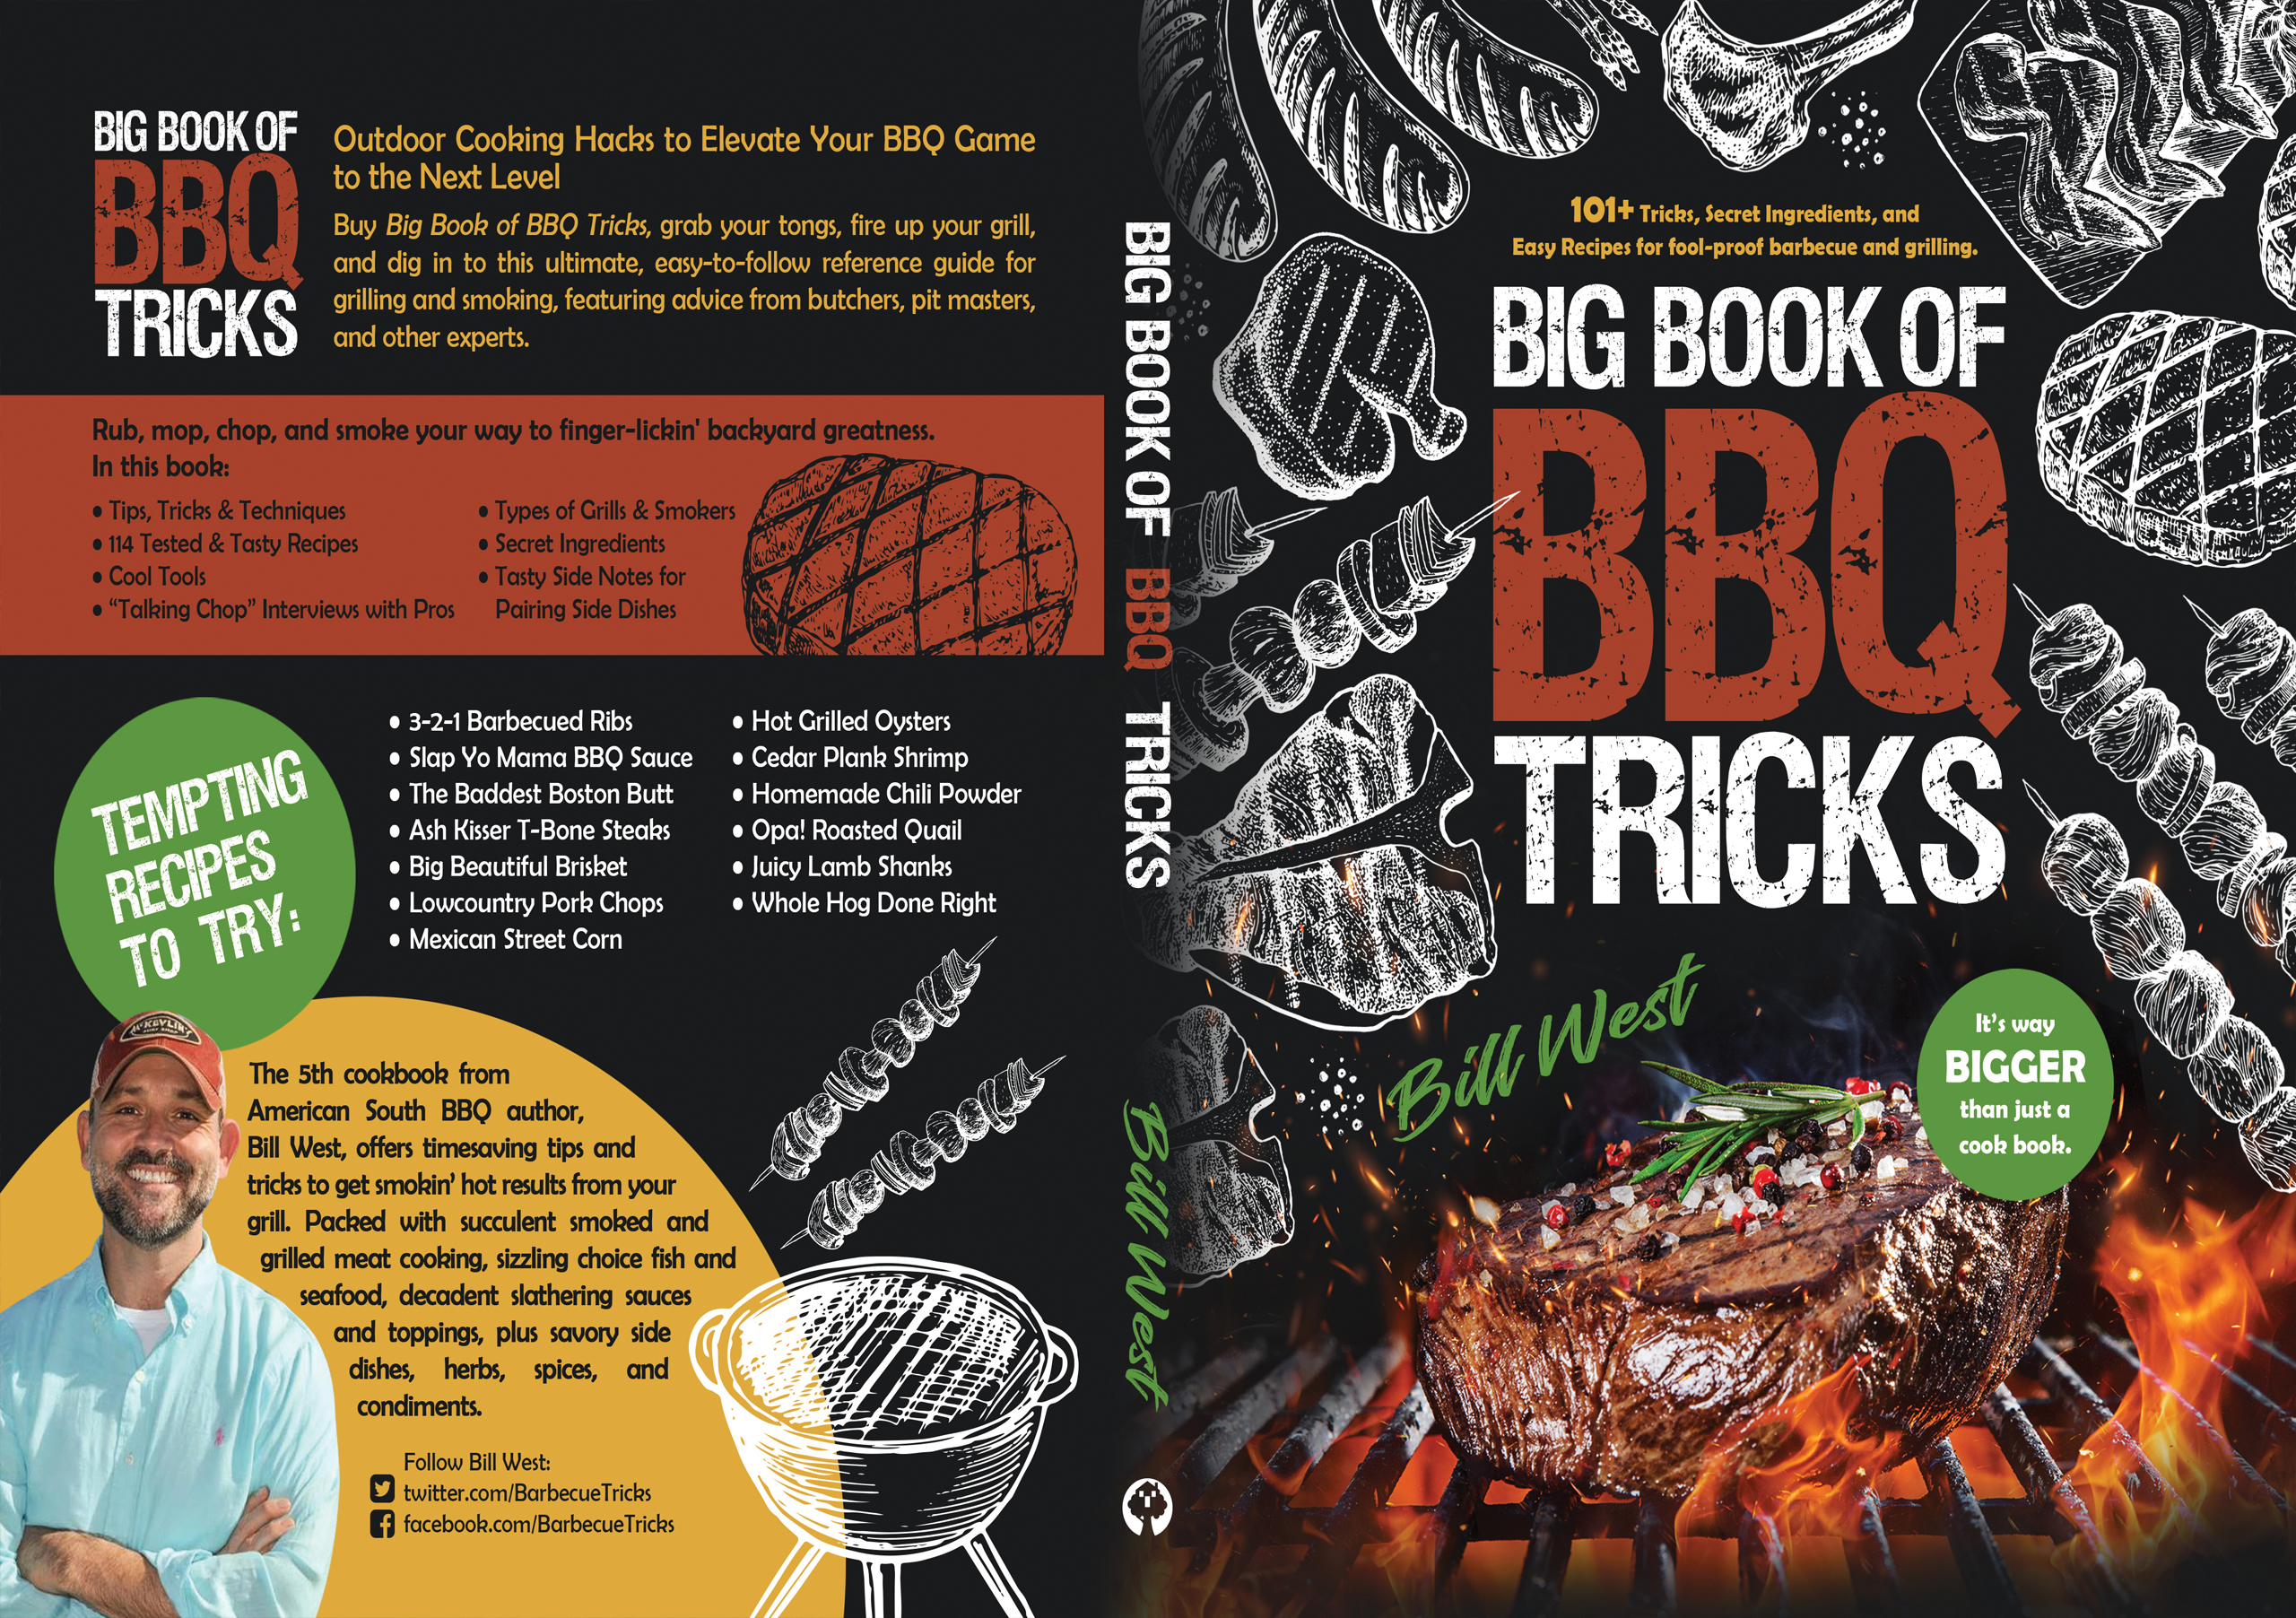 Big Book of BBQ Tricks paperback